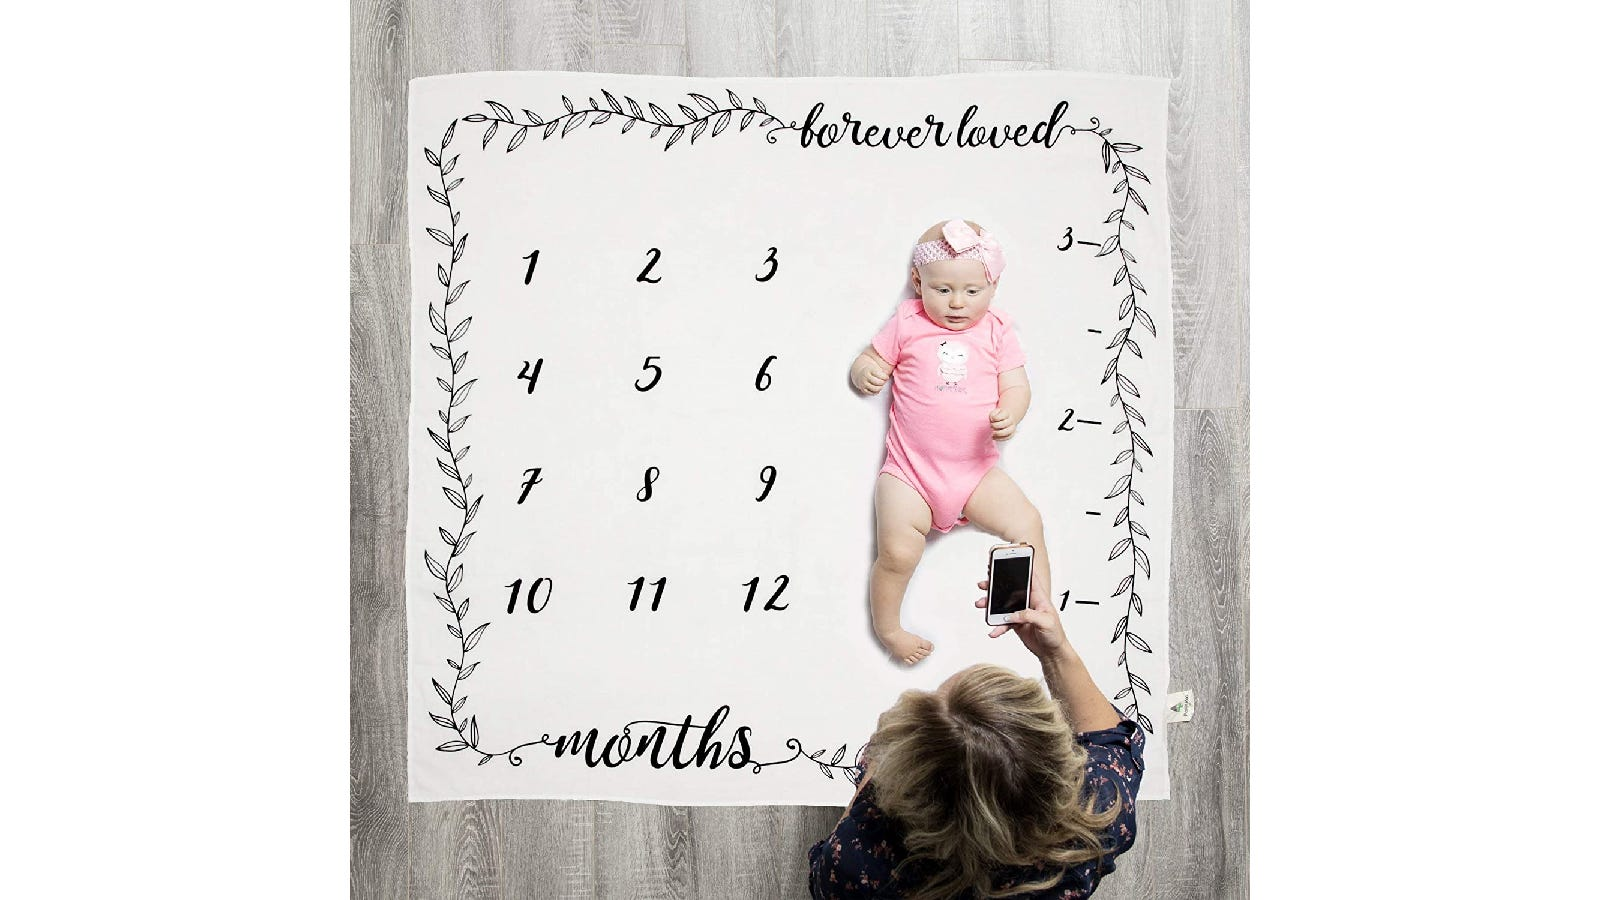 """A baby laying on a white blanket with a black leaf border, the text """"forever loved"""" printed in the top right corner, the numbers 1 through 12 on the left of the blanket, a 3' growth chart on the right of the blanket, and the text """"months"""" printed in the left corner; a woman leans over the baby and takes a picture with her phone."""